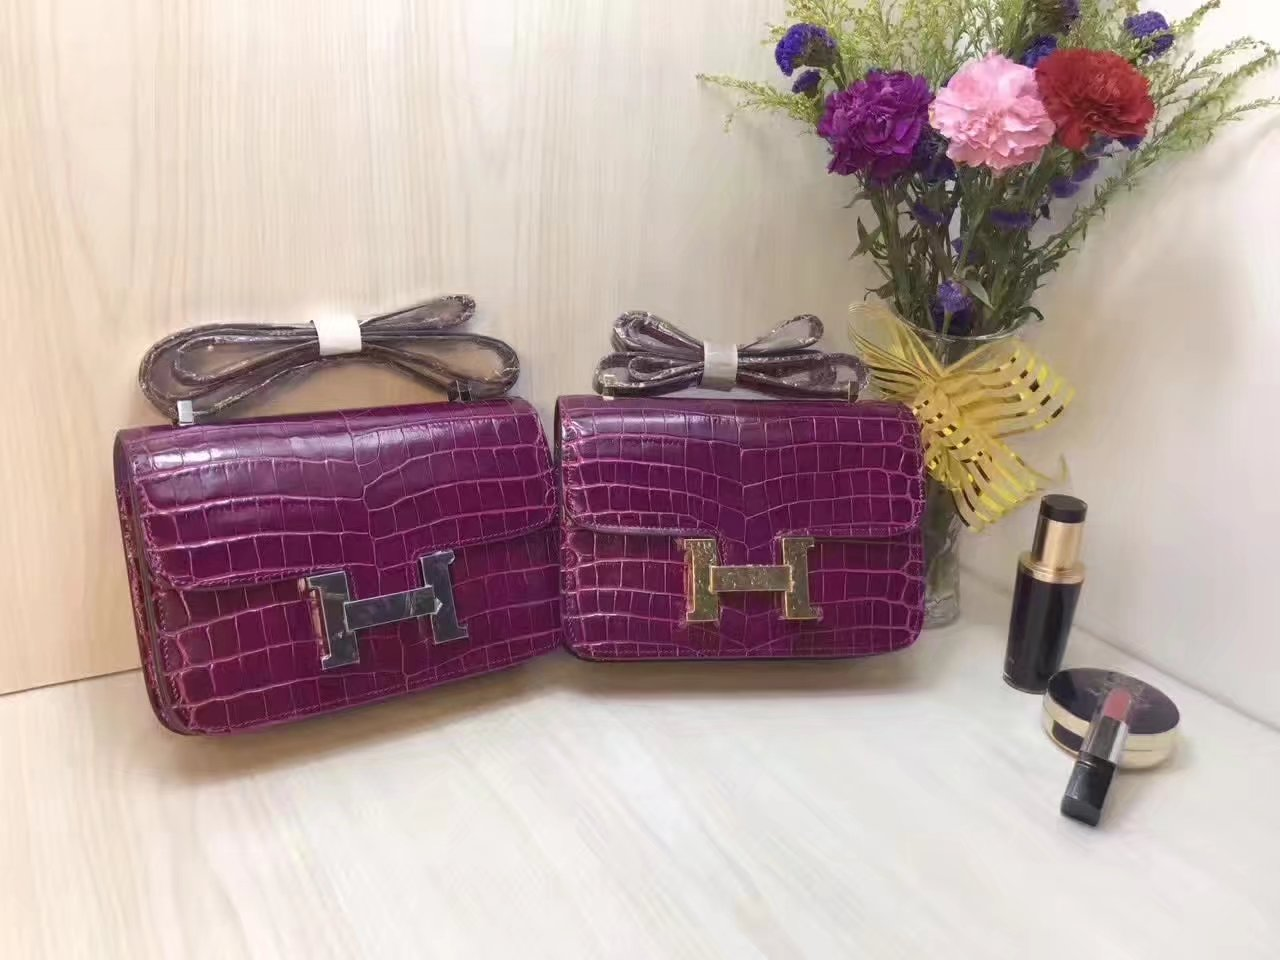 Hermes 23cm Constance Shoulder Bag Crocodile Stripe Purple With Gold And Silver